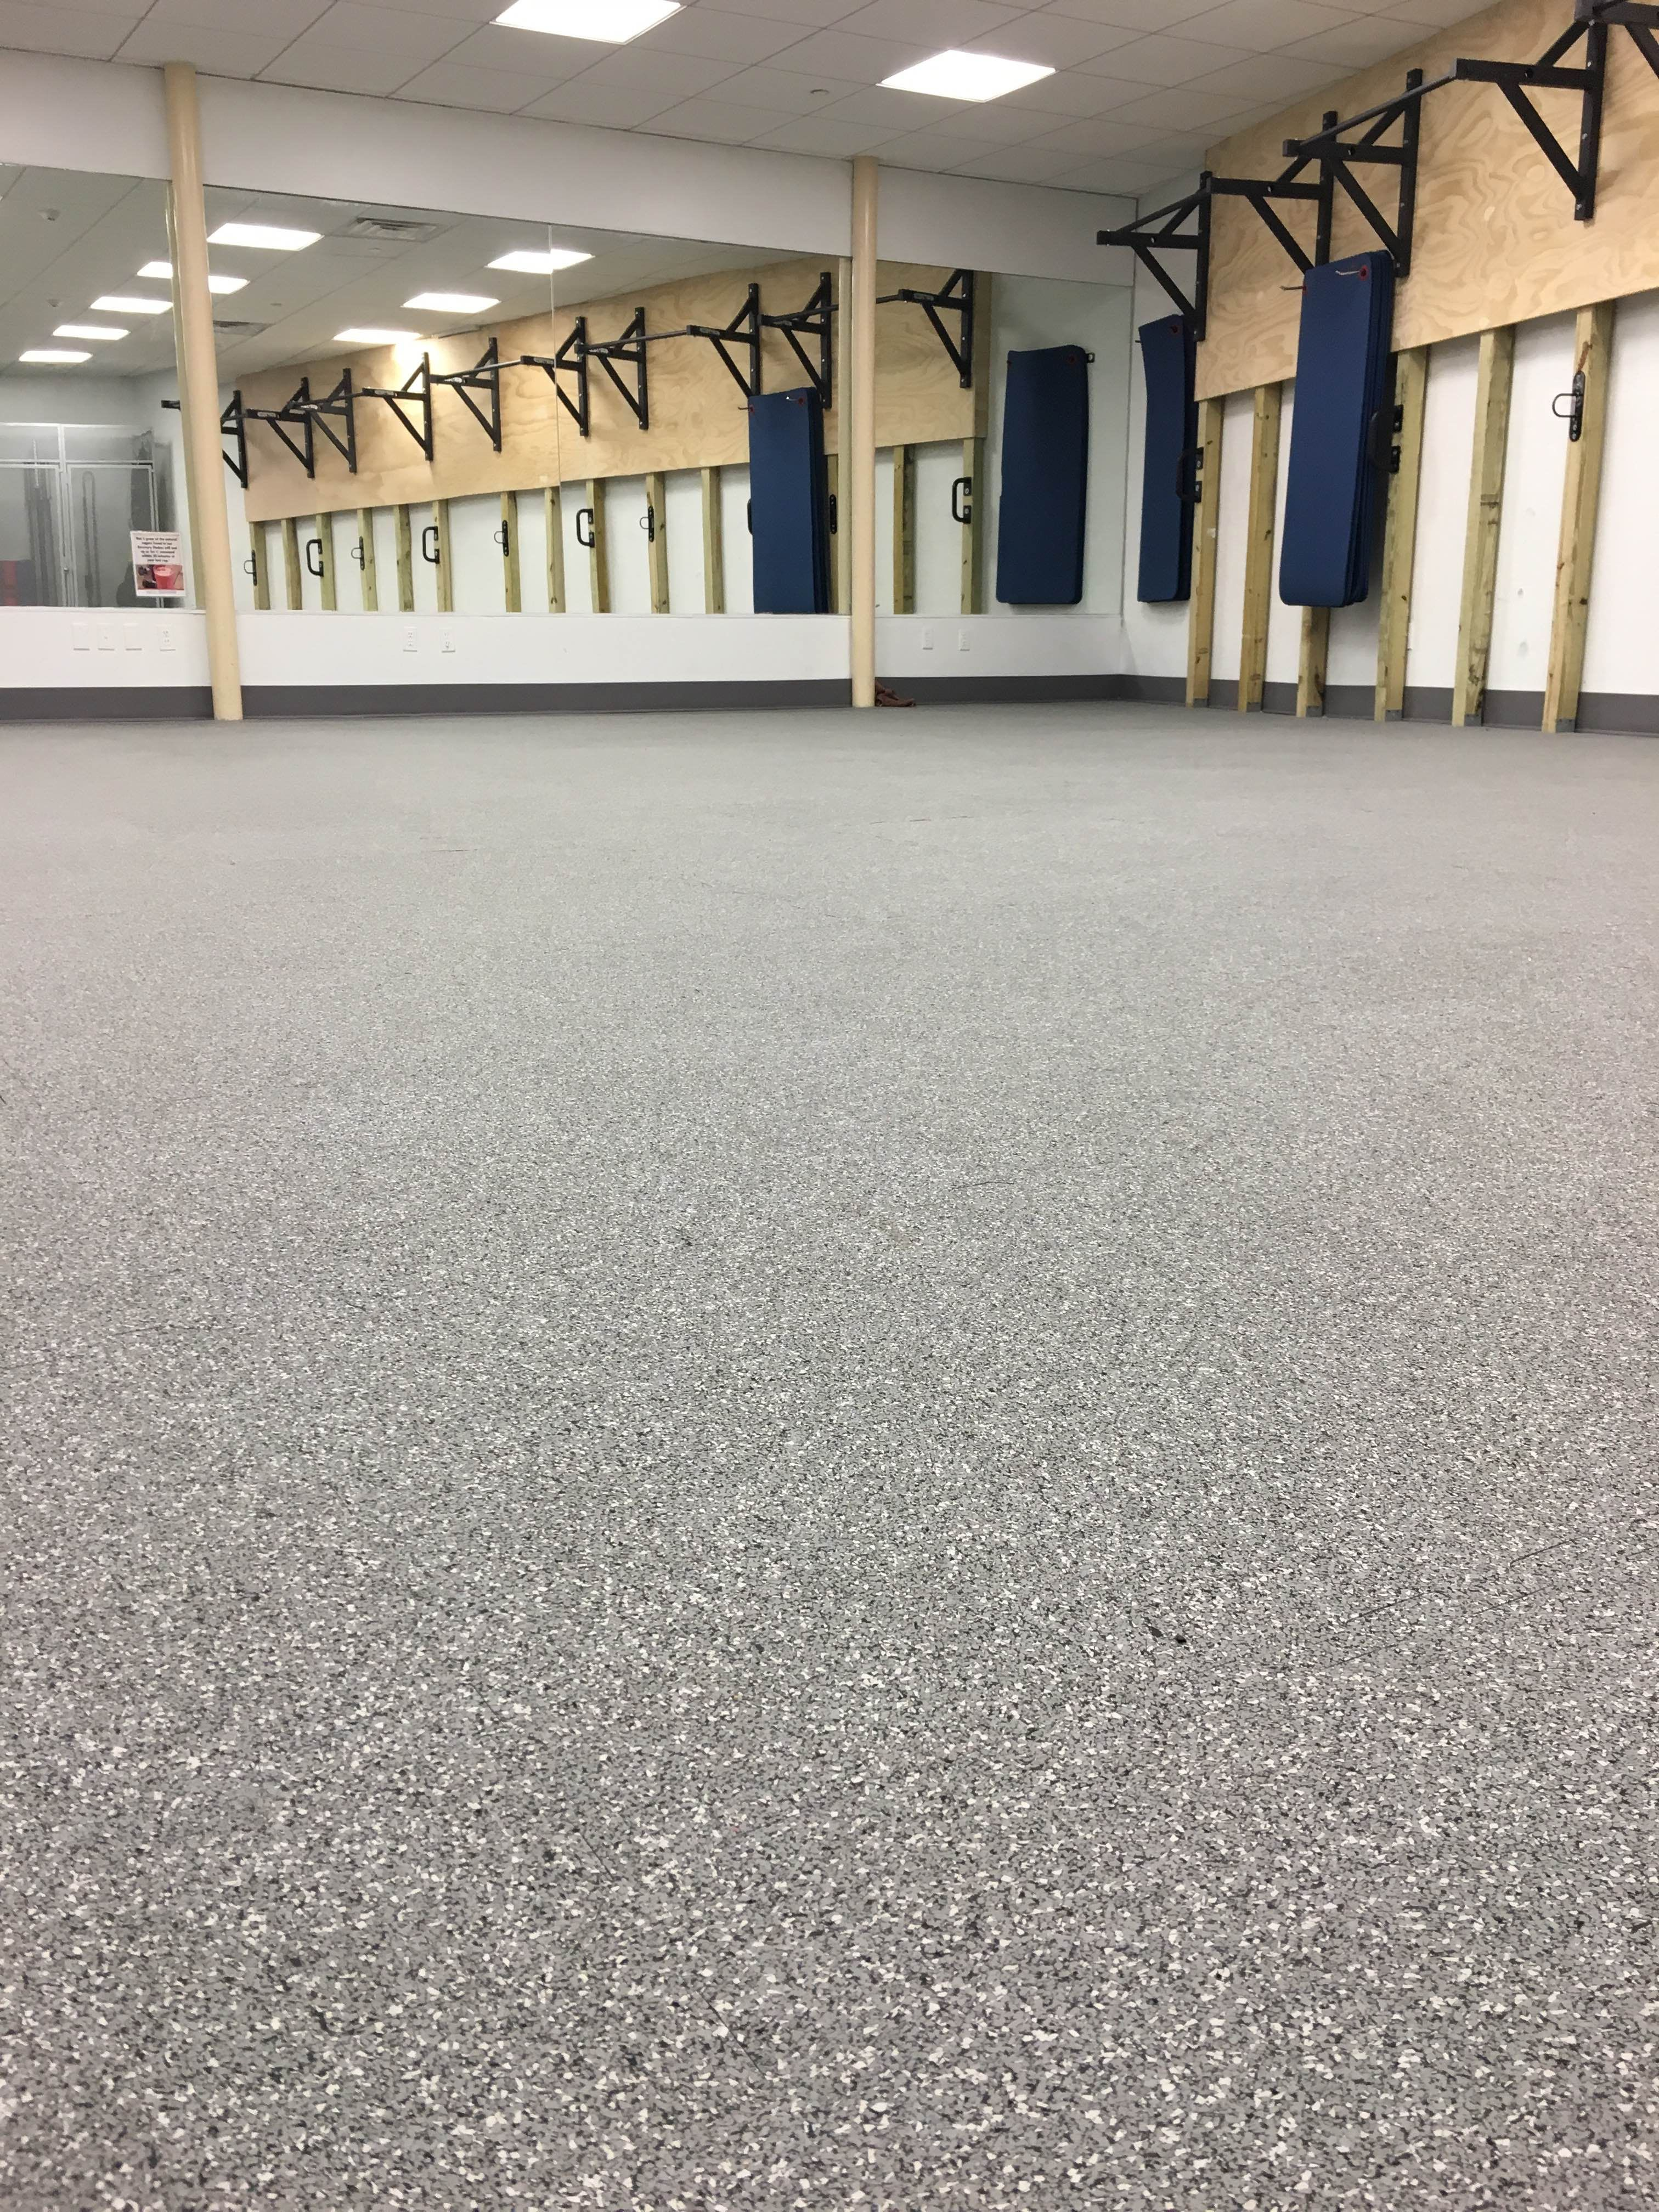 Rubber Flooring Doesn T Have To Look Like Car Tire This Is Everlast In A High Concentrate Epdm Rubber Floor From E Rubber Flooring Rubber Rolls Salon Concepts